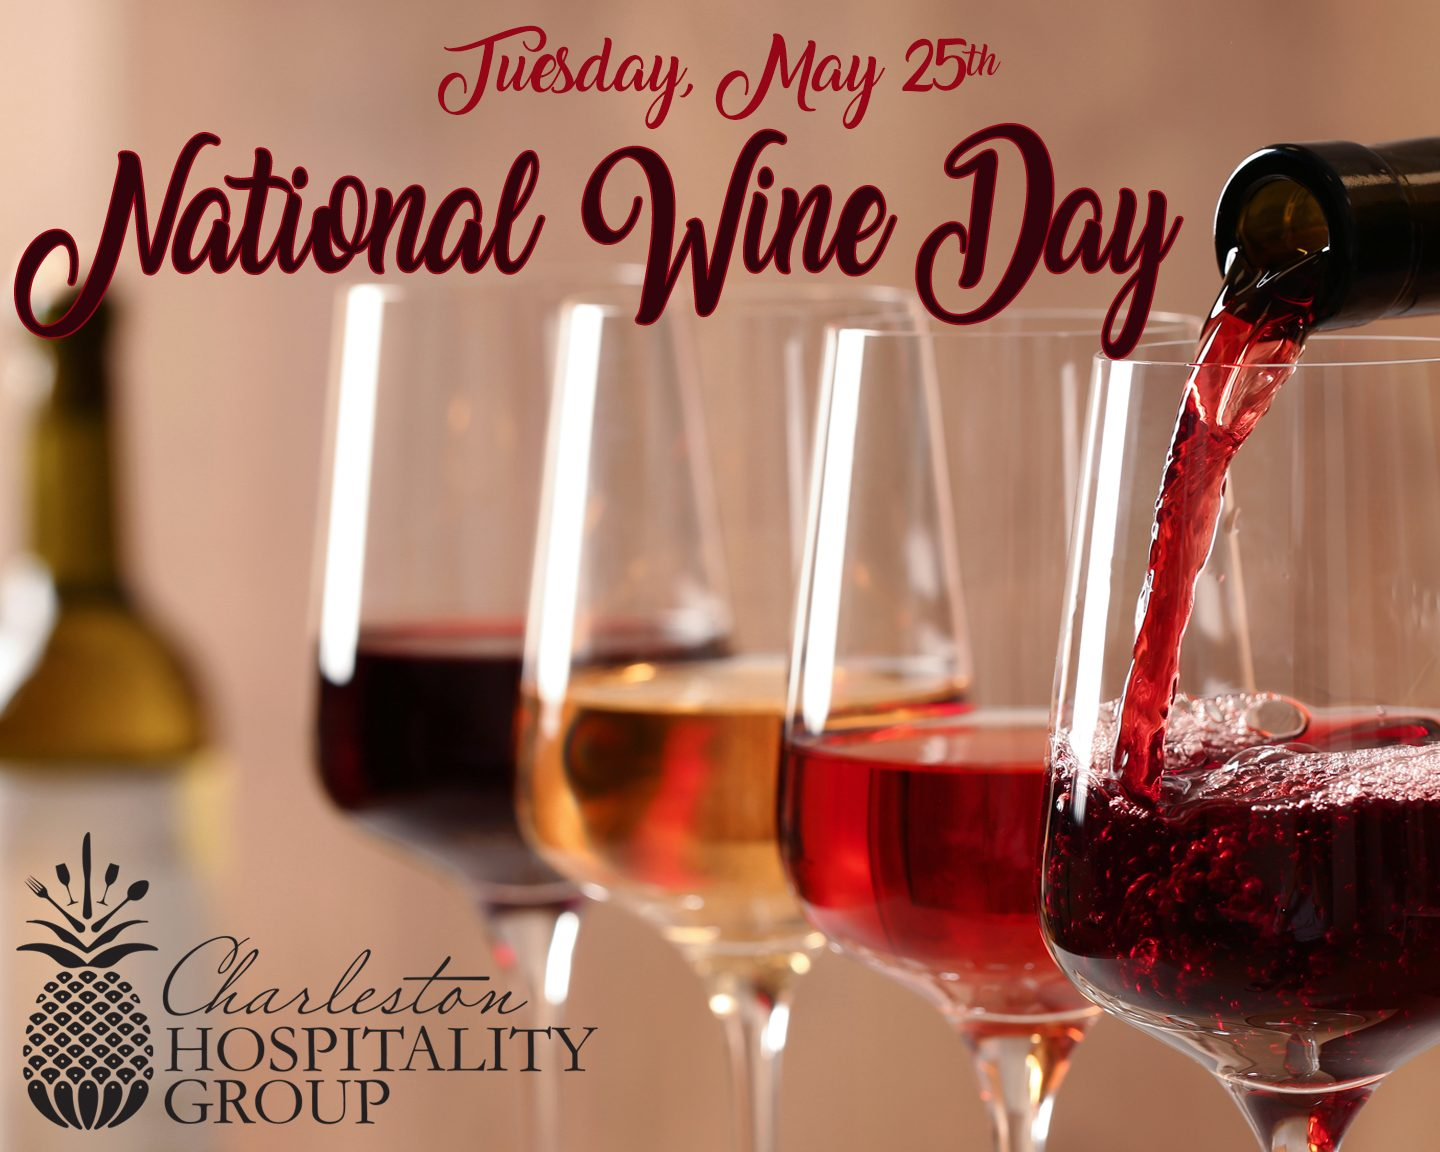 Wine & Dine All Day at Charleston Hospitality Group for National Wine Day